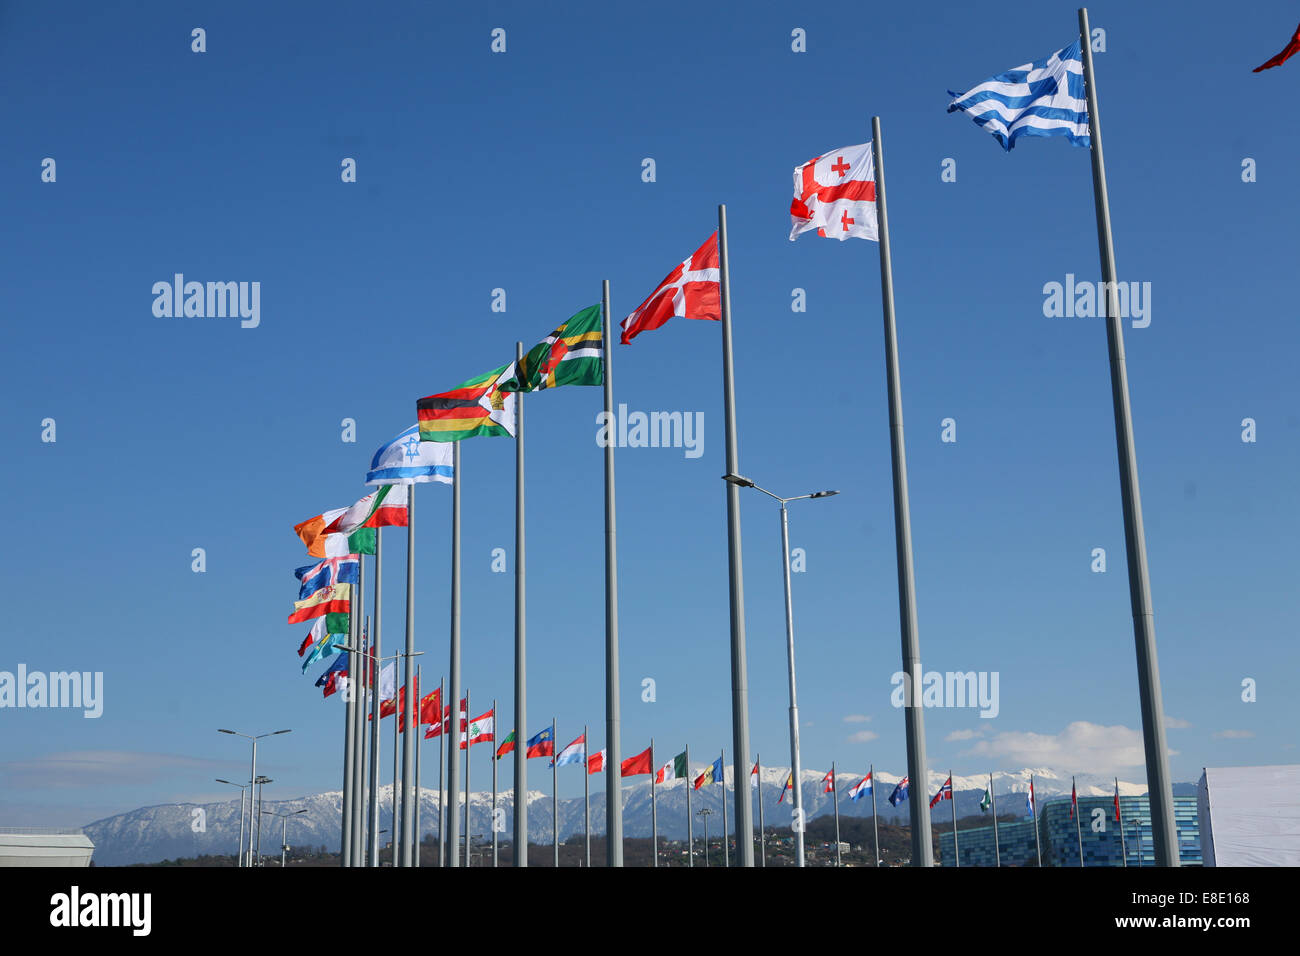 Curve of international flags mountains in the background Sochi - Stock Image